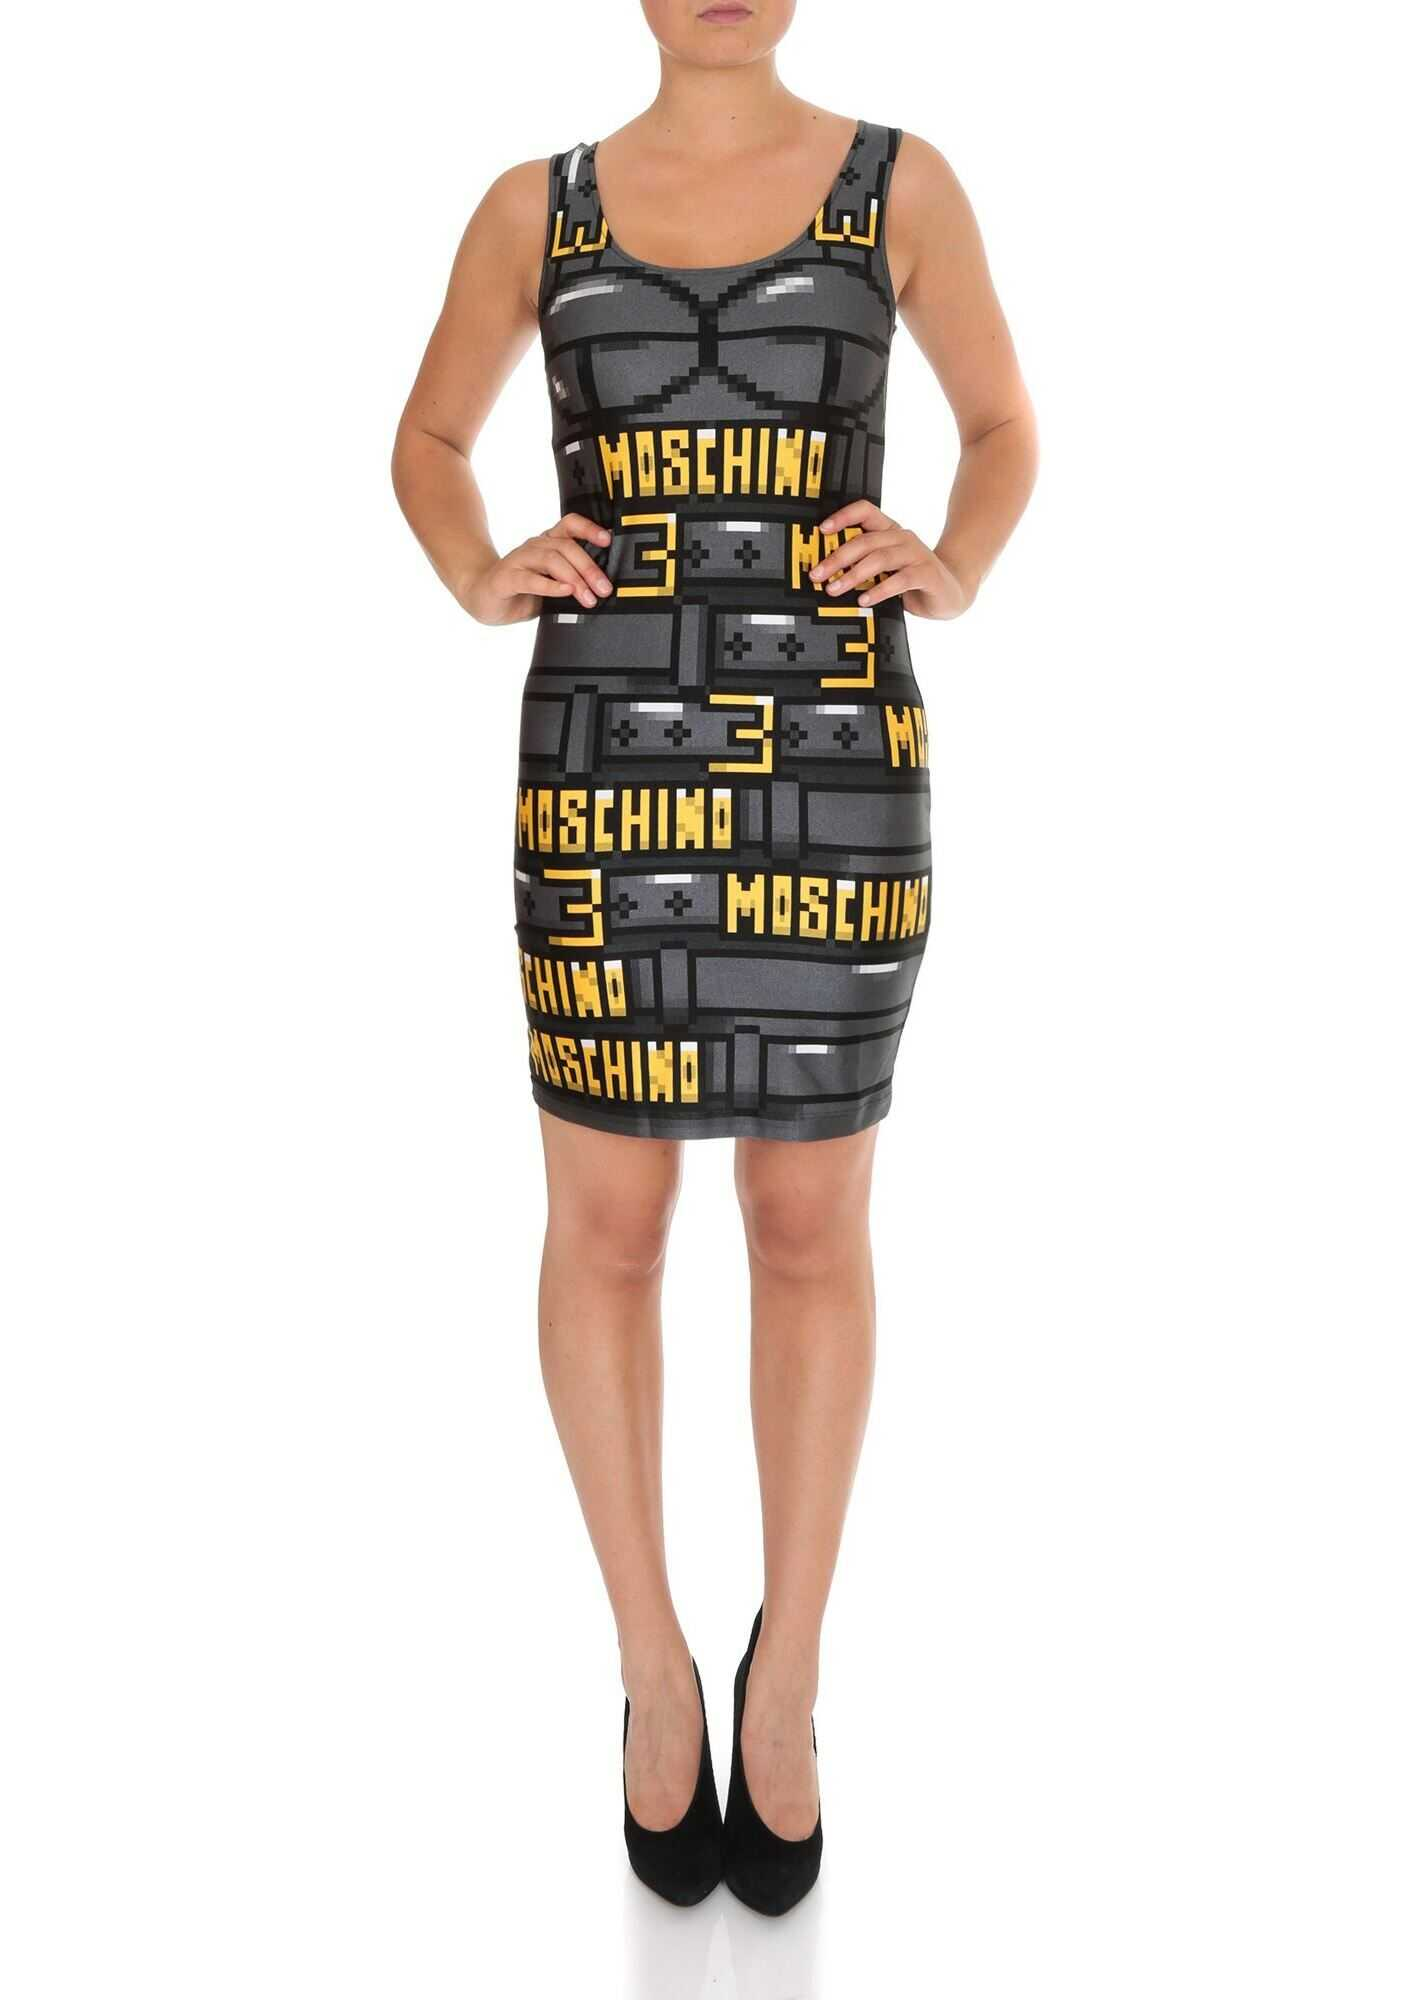 Moschino Moschino Capsule Collection Pixel Dress Black